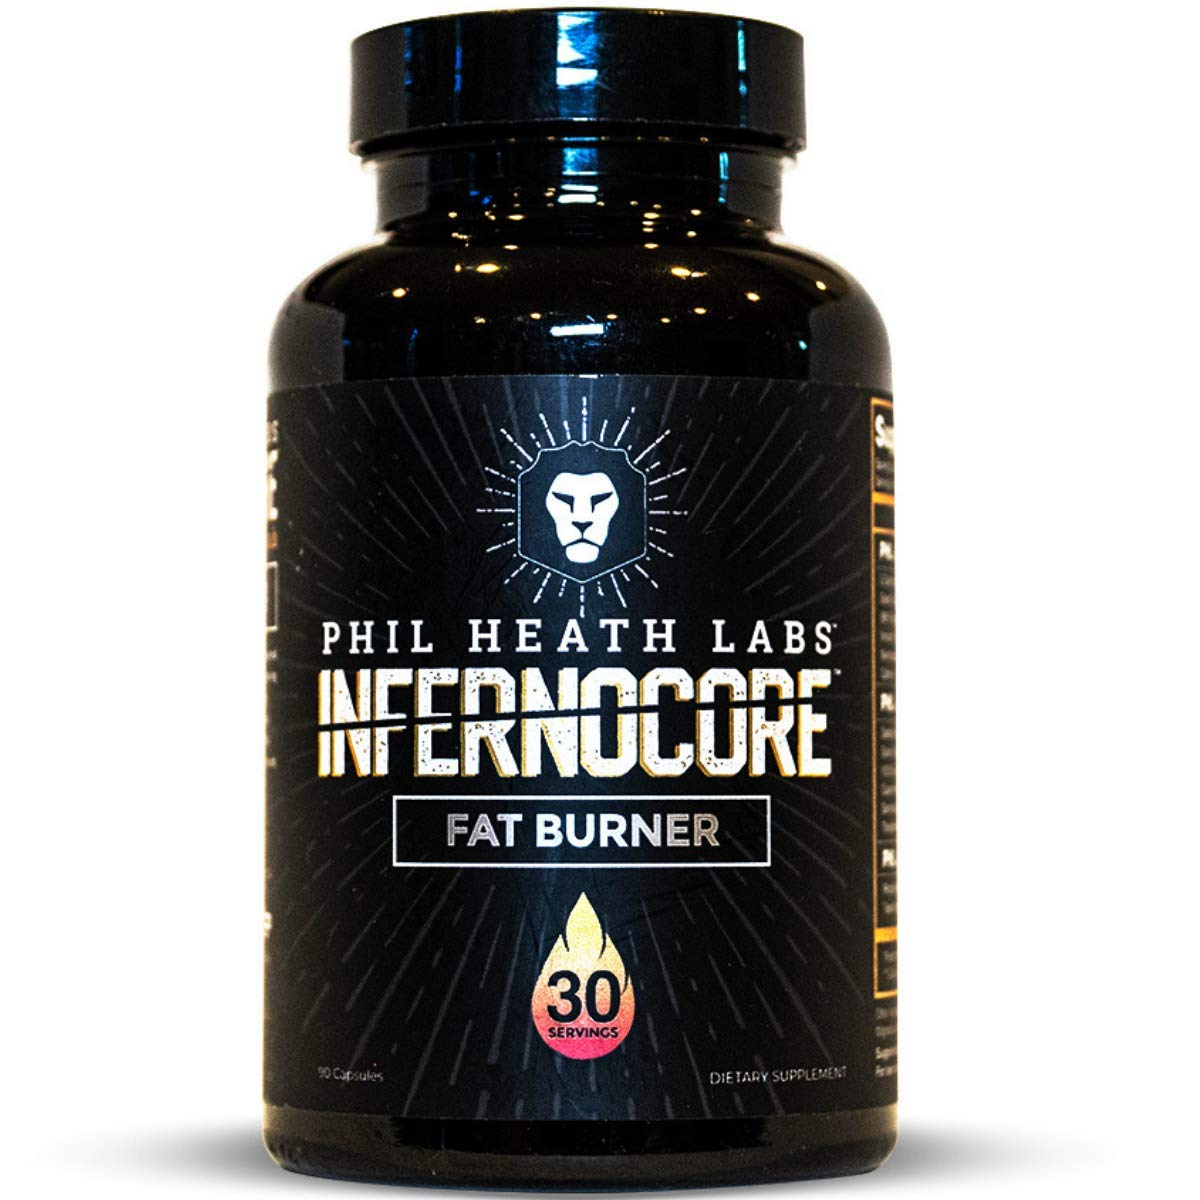 Phil Heath Labs - Infernocore Fat Burner - Energy, Heat, Shred and Focus - Teacrine, Innoslim and GBBGO - 30 Servings